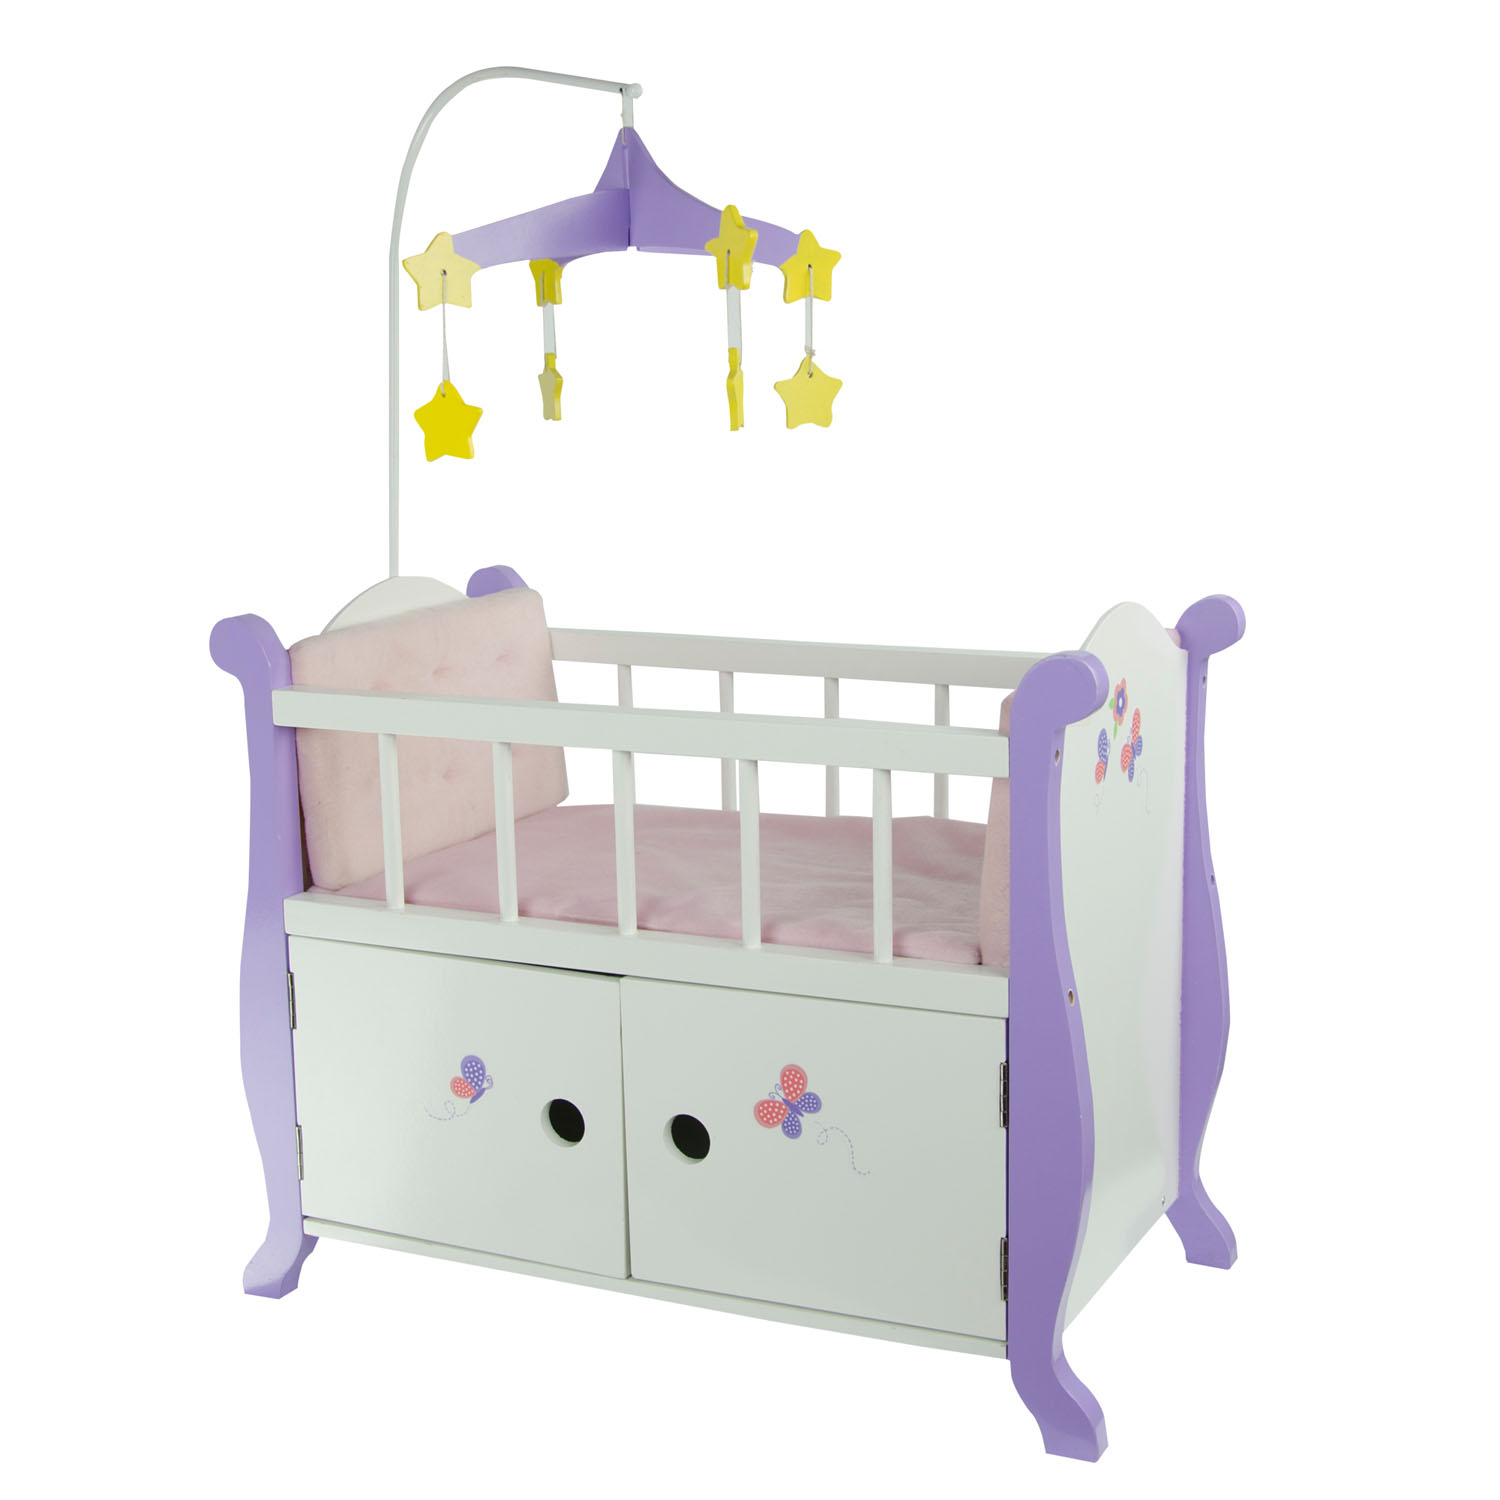 "Olivia's Little World Little Princess 18"" Doll Furniture - Baby Nursery Bed with Cabinet"